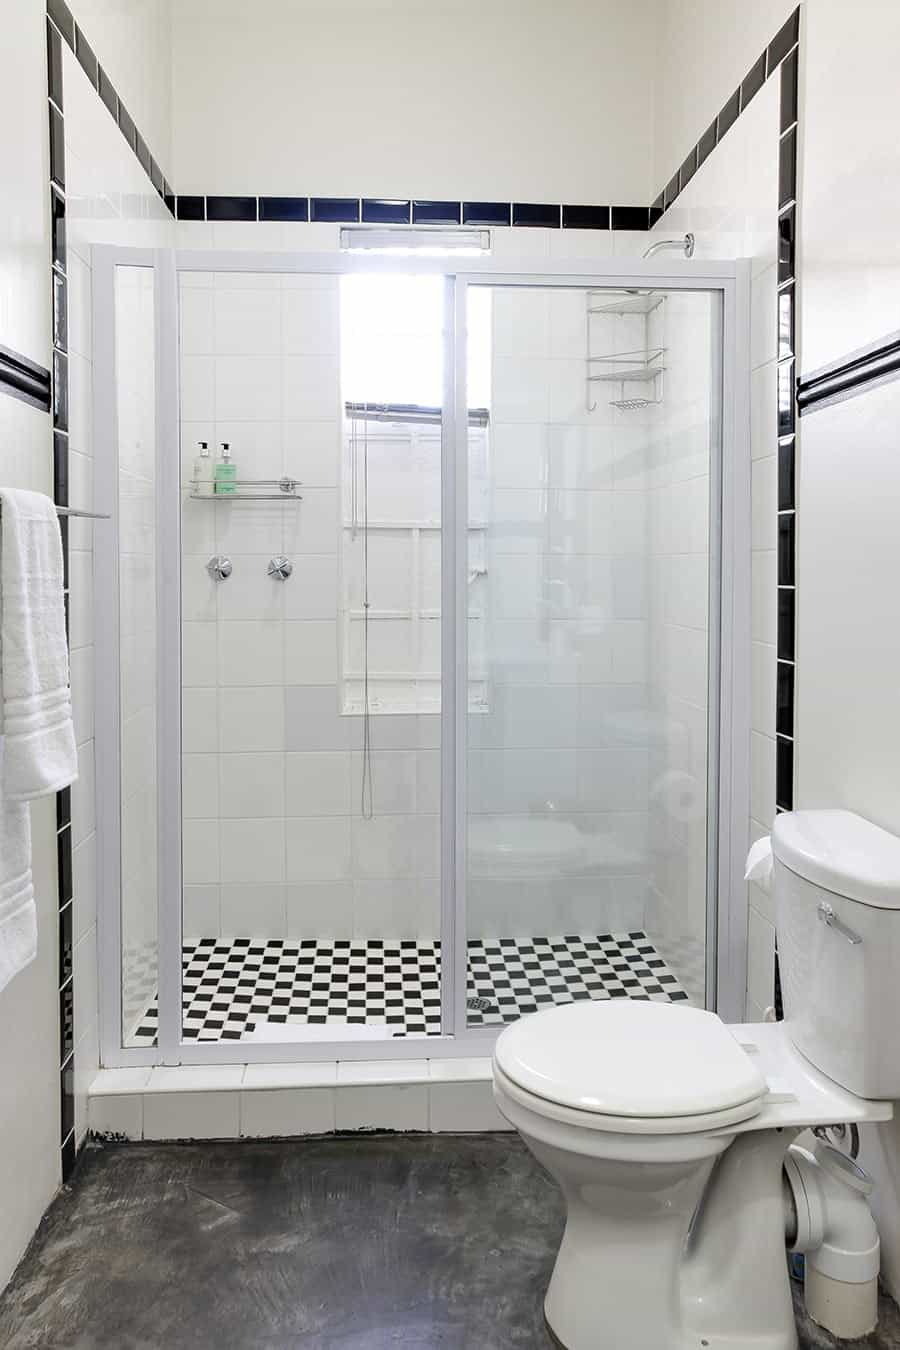 Self catering apartment shower and bathroom